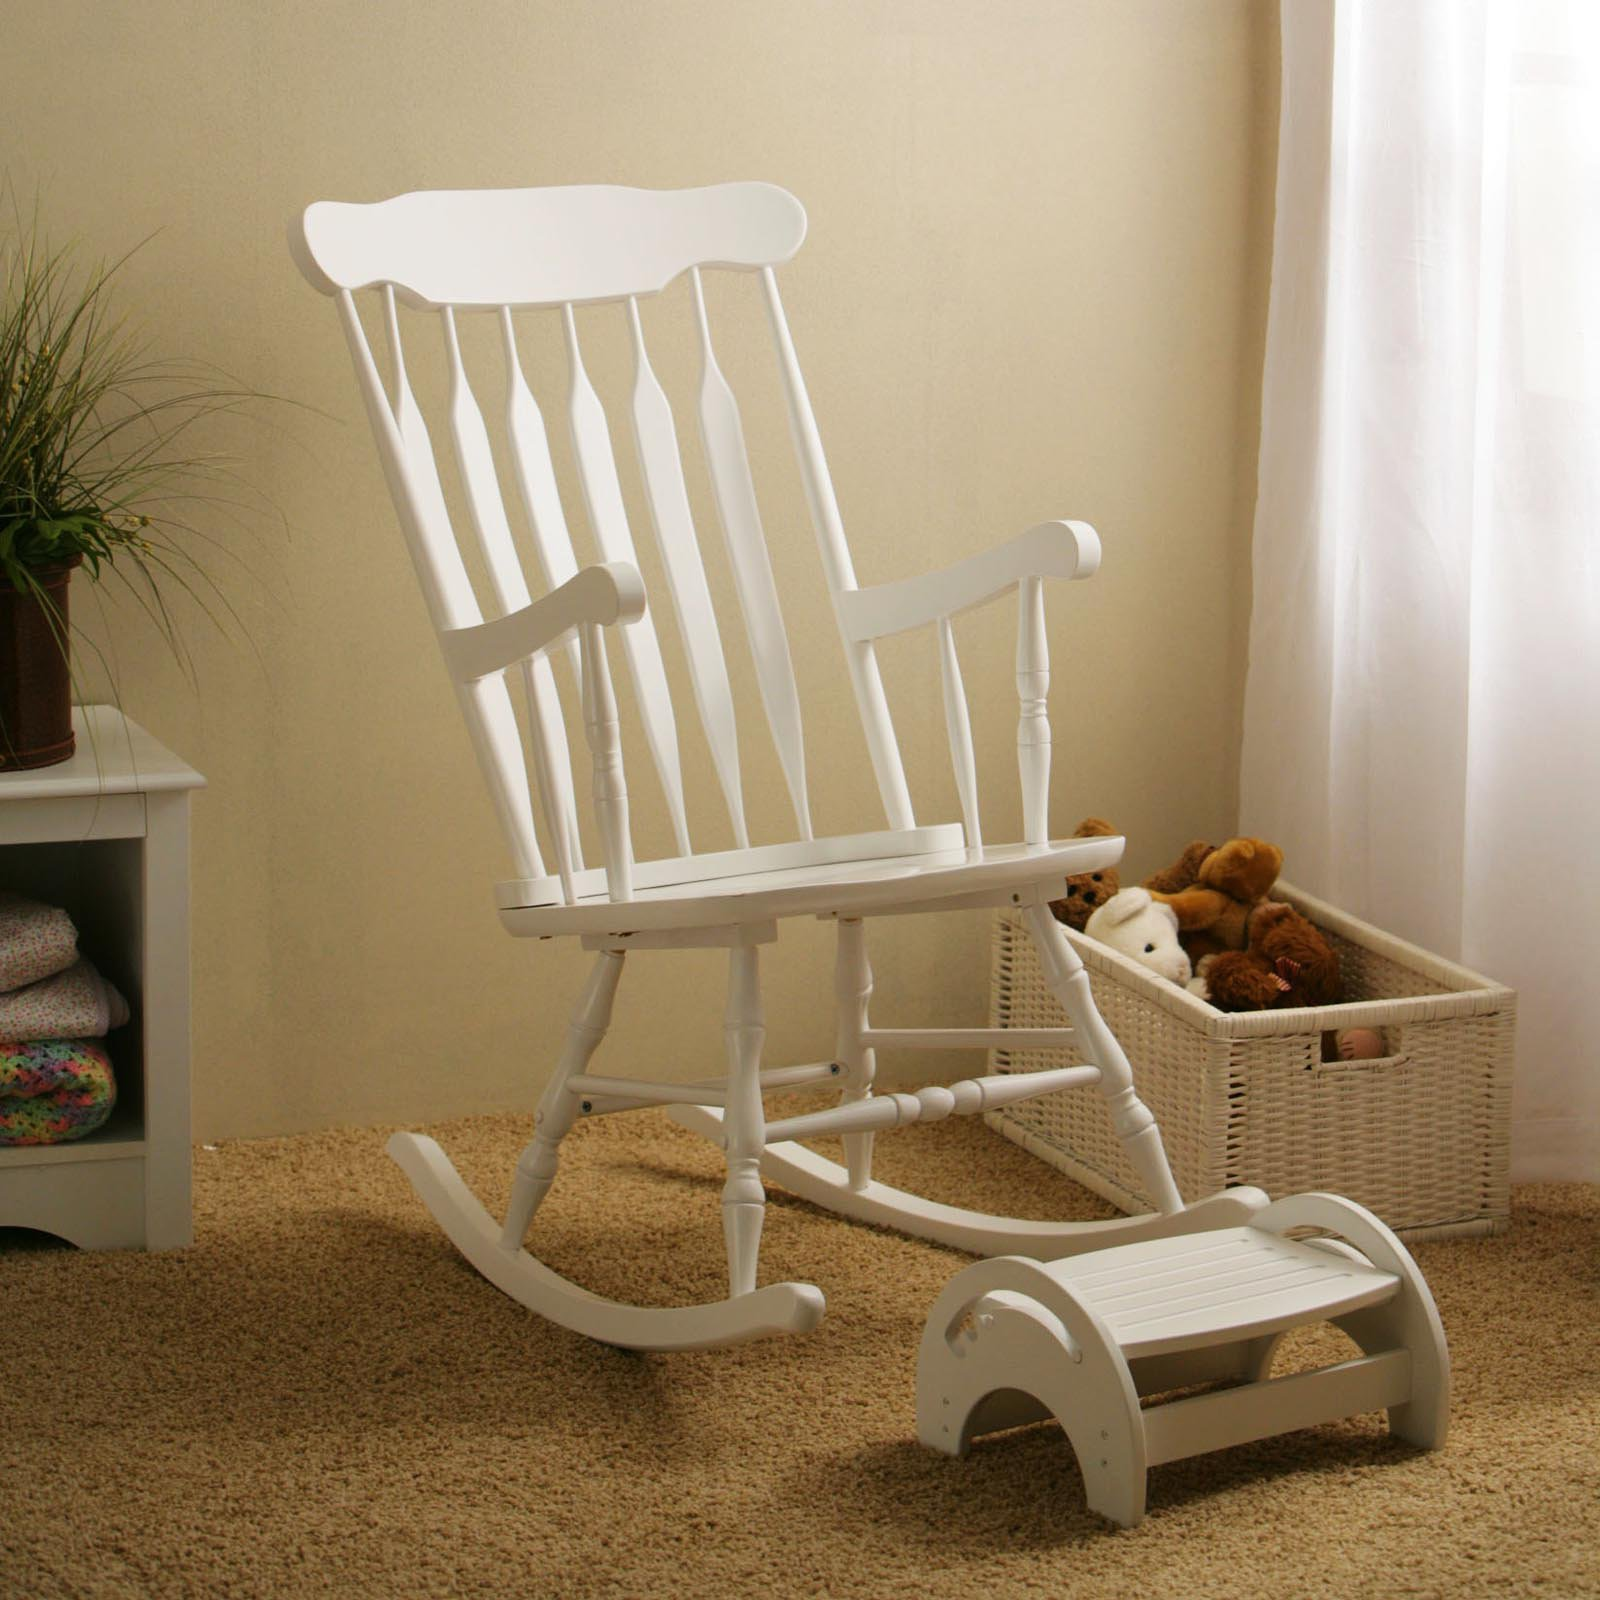 nursery rocking chair master:kd